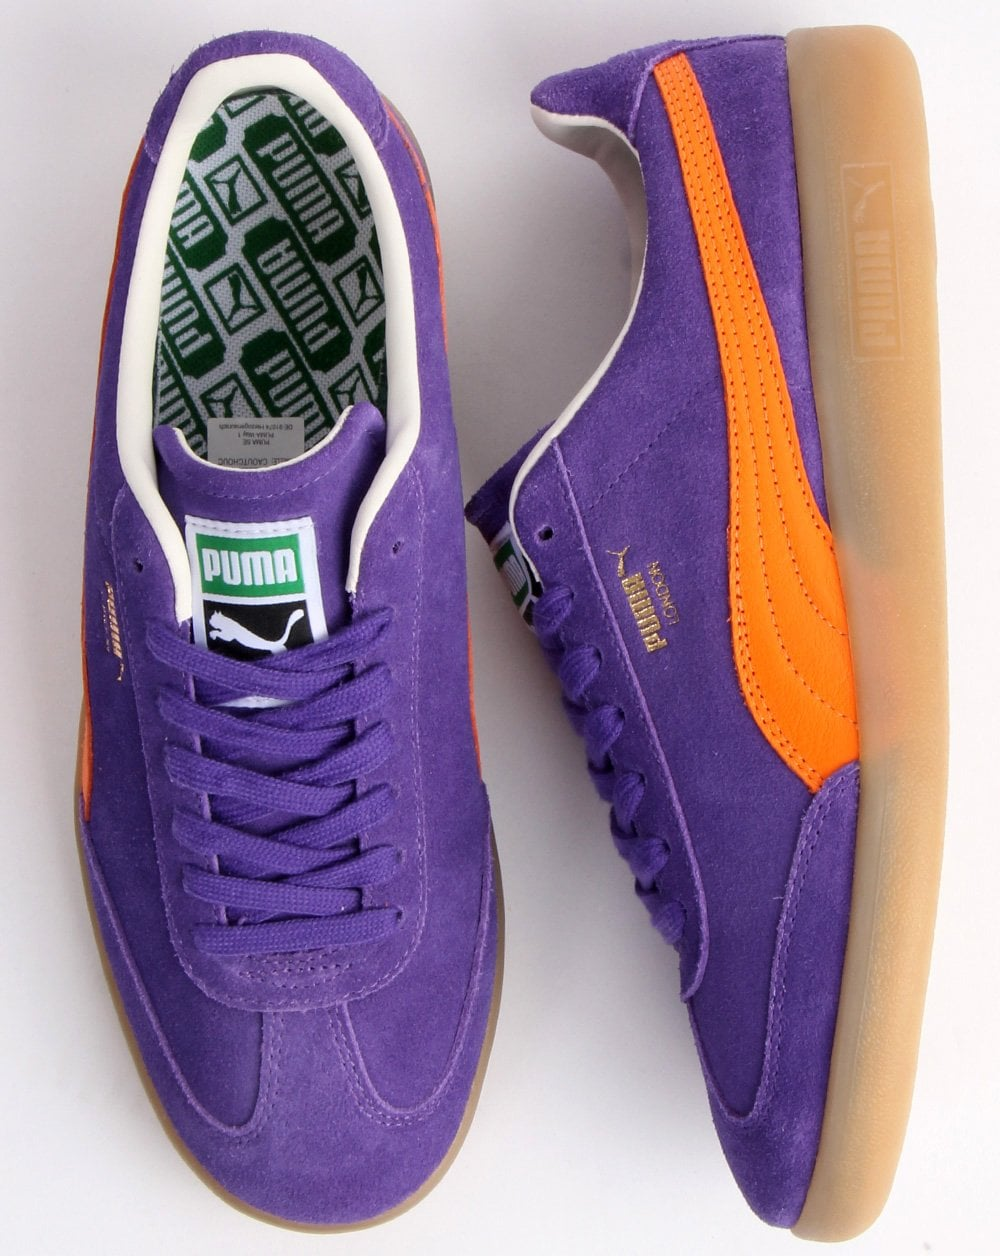 PUMA Madrid London trainer